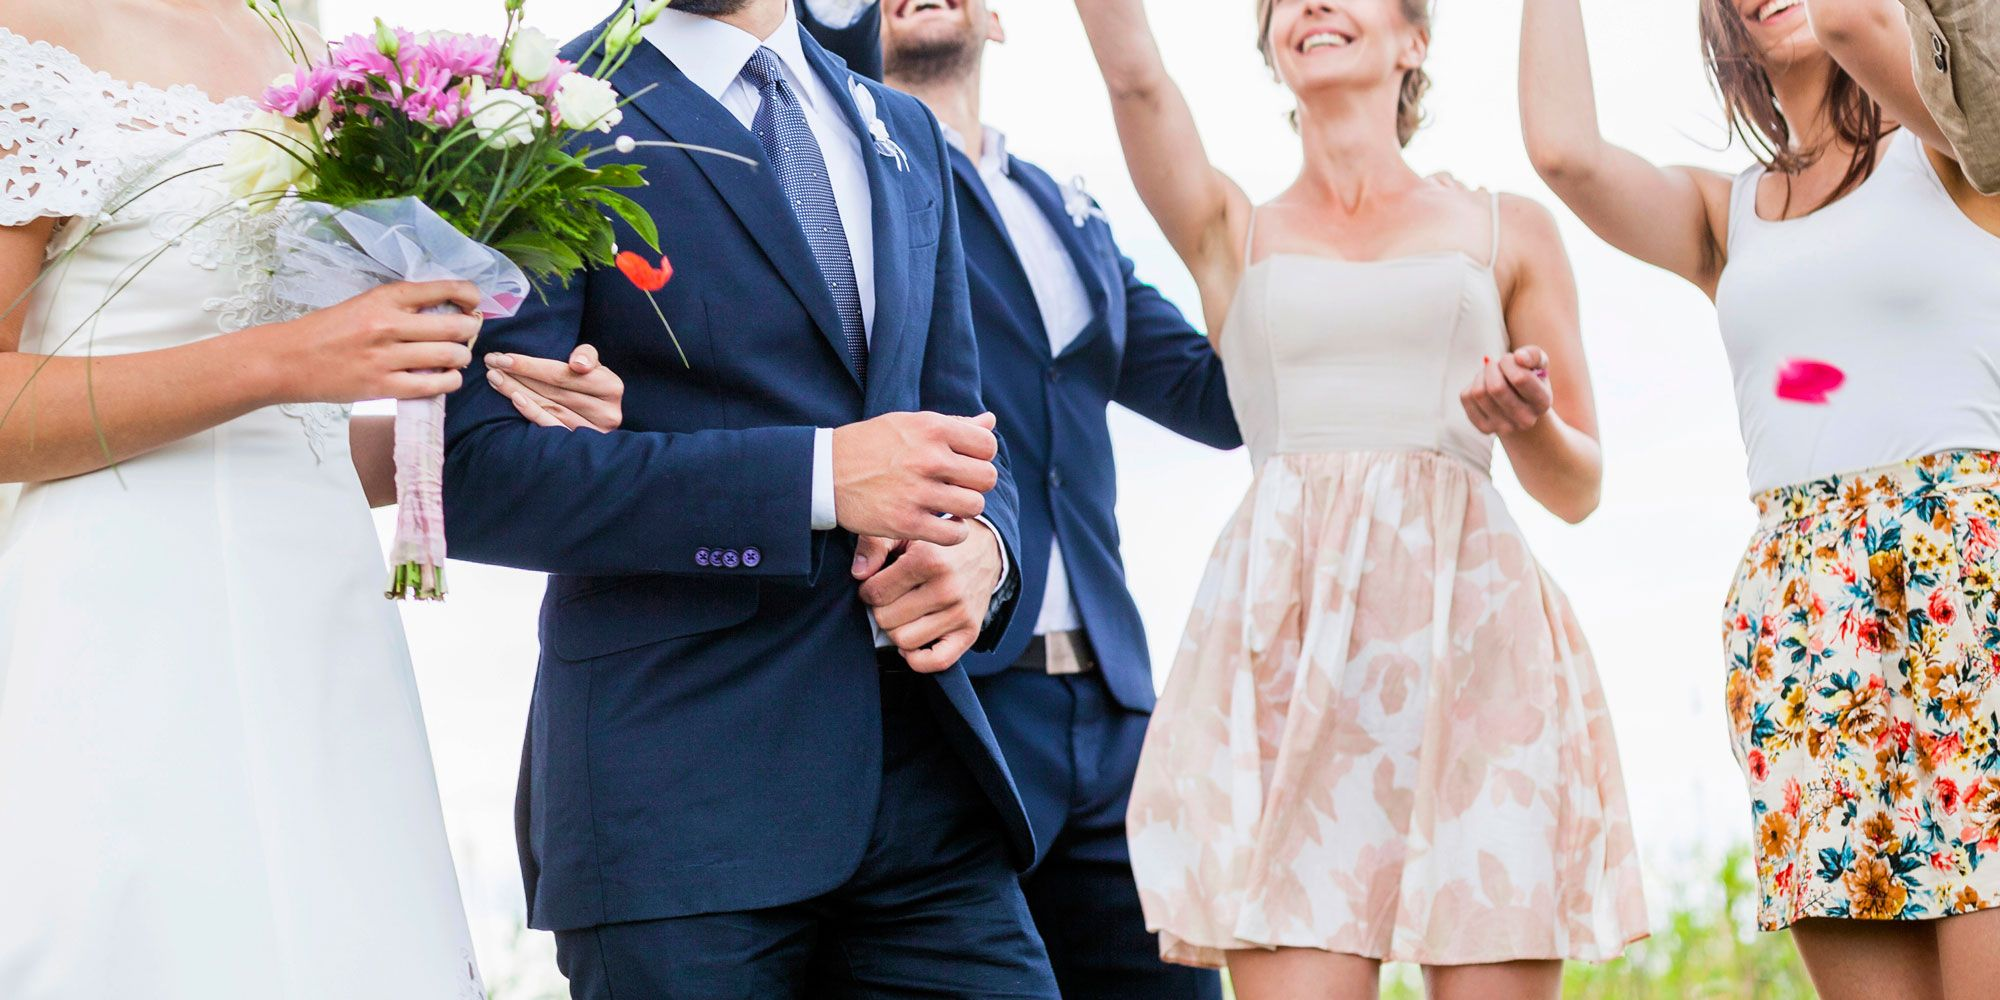 What To Wear To Any Wedding With A Dress Code